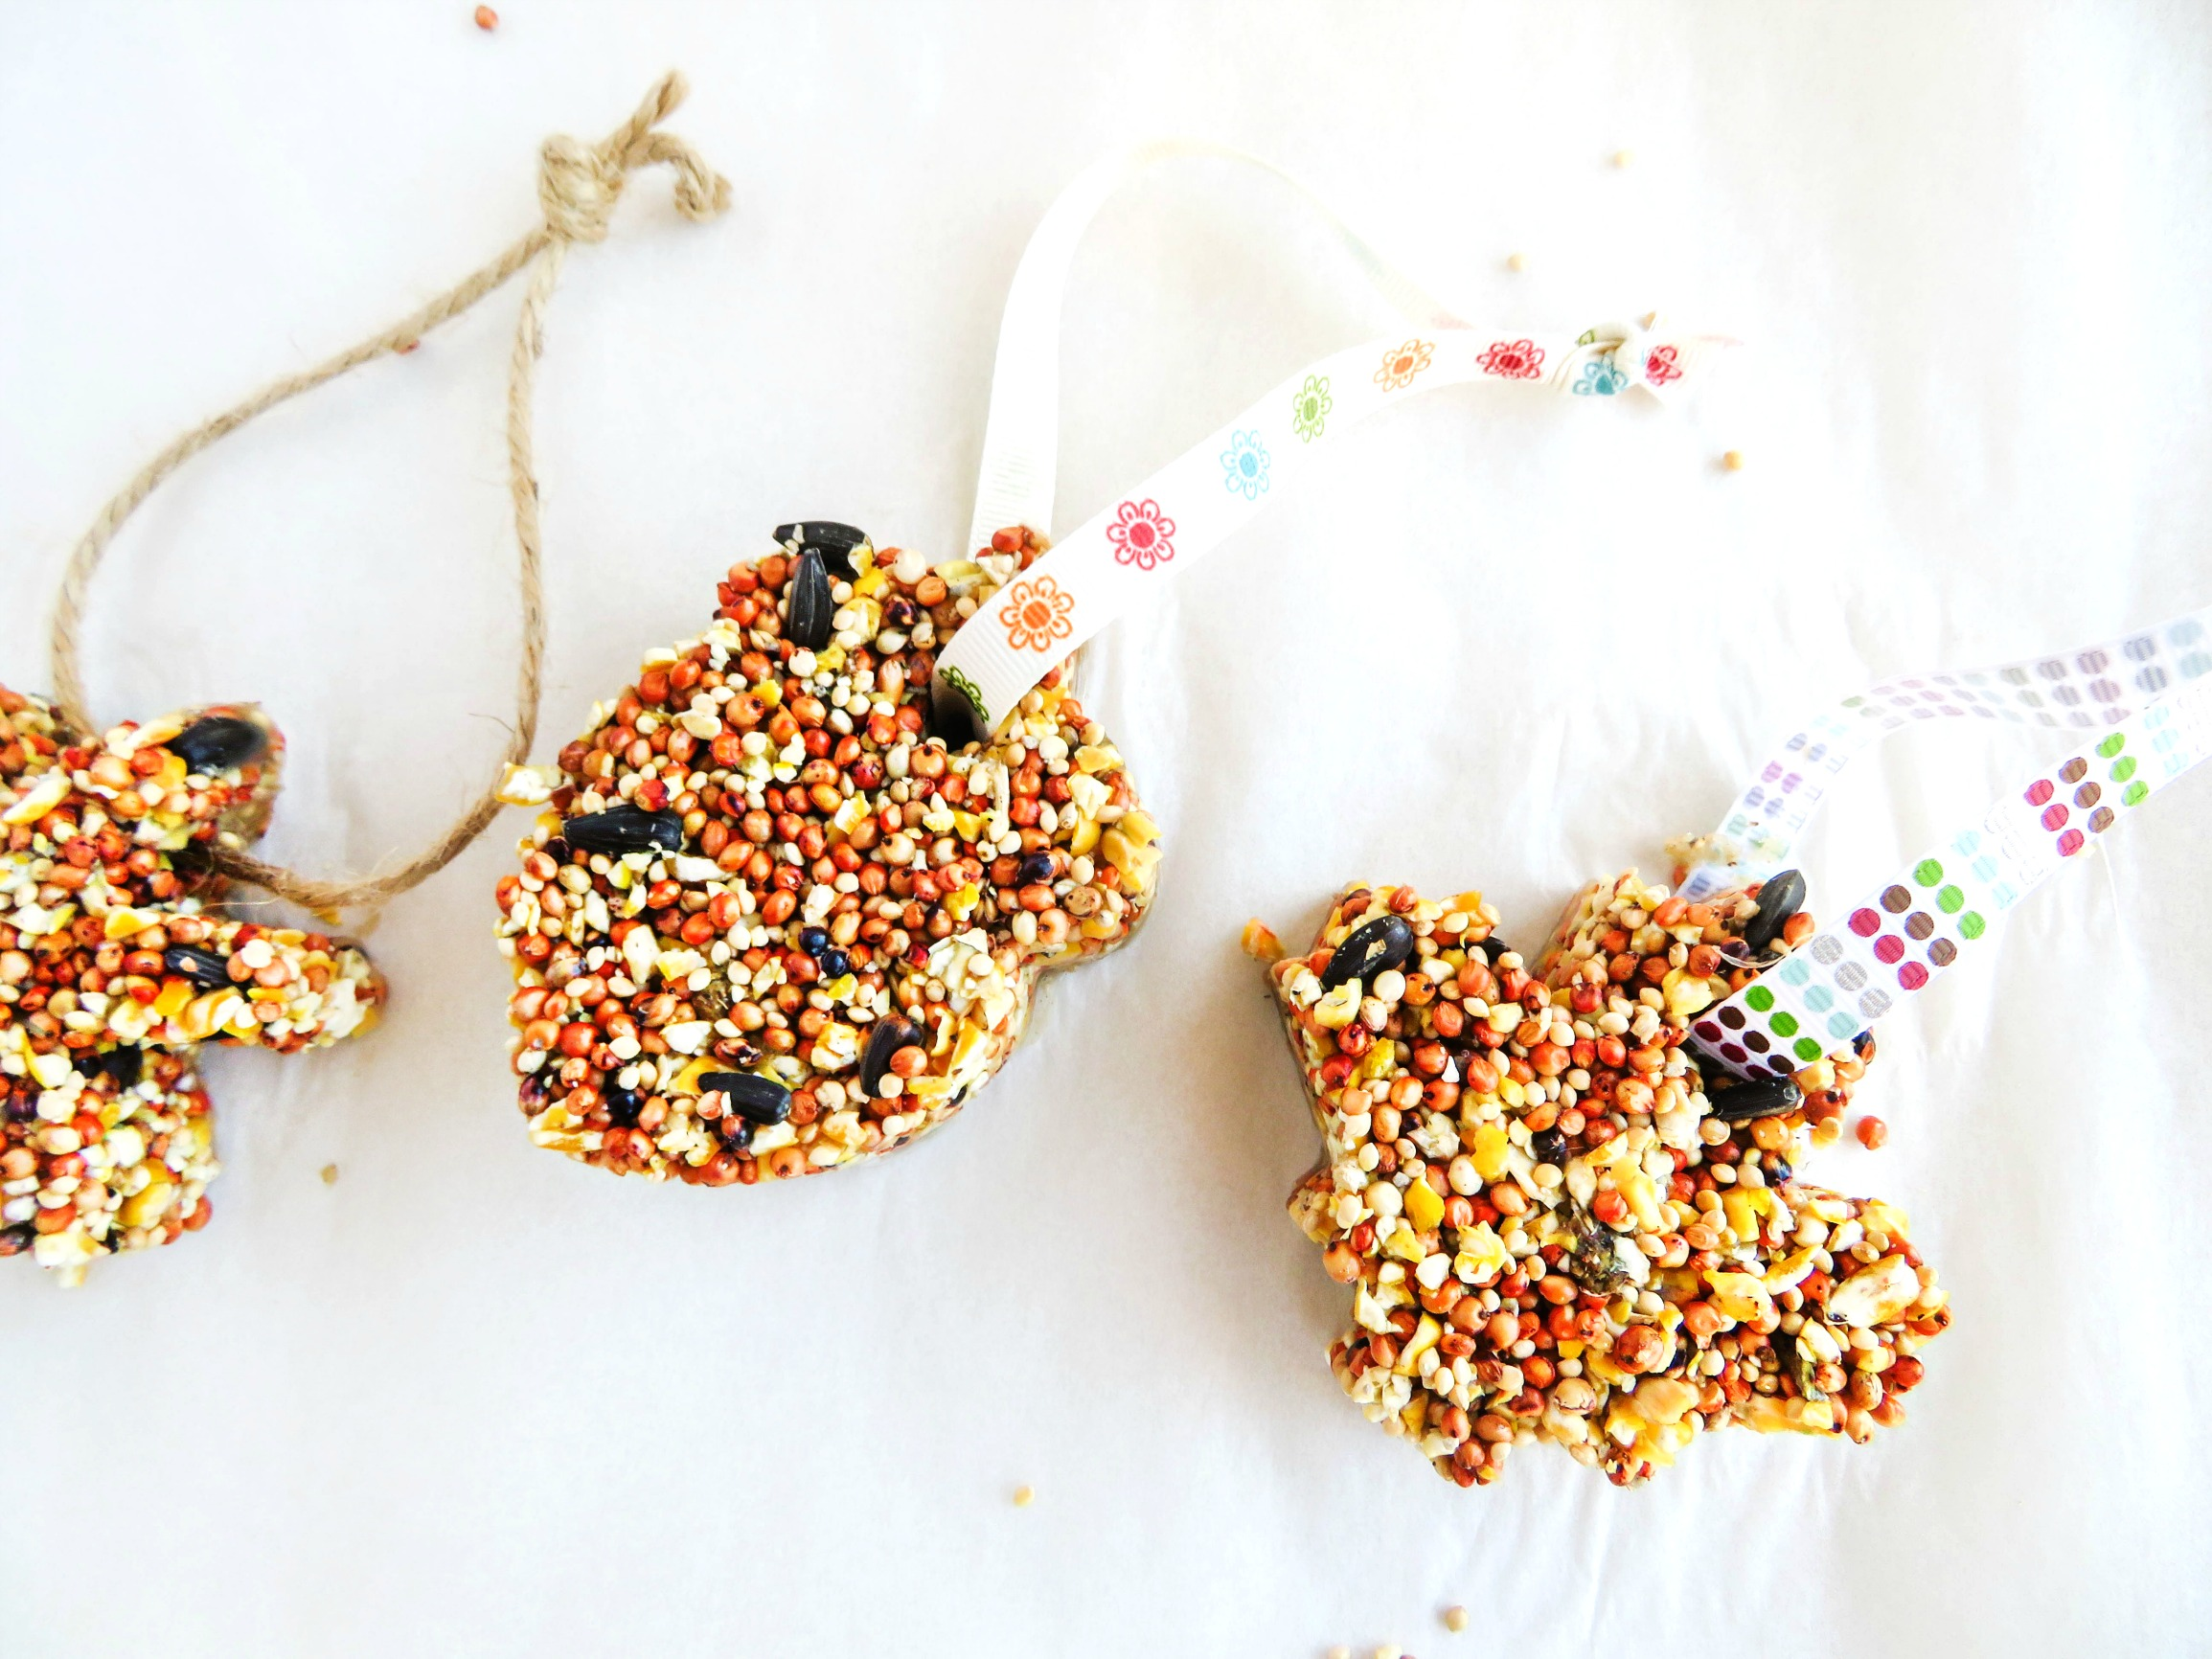 How to Make The Best Birdseed Ornaments, Homemade Birdseed treats make the perfect family activity, DIY Bird feeders are a great craft for kids, Birdseed Ornaments Recipe #birdseedornaments #Birdtreats #homemadebirdfeeders #birds